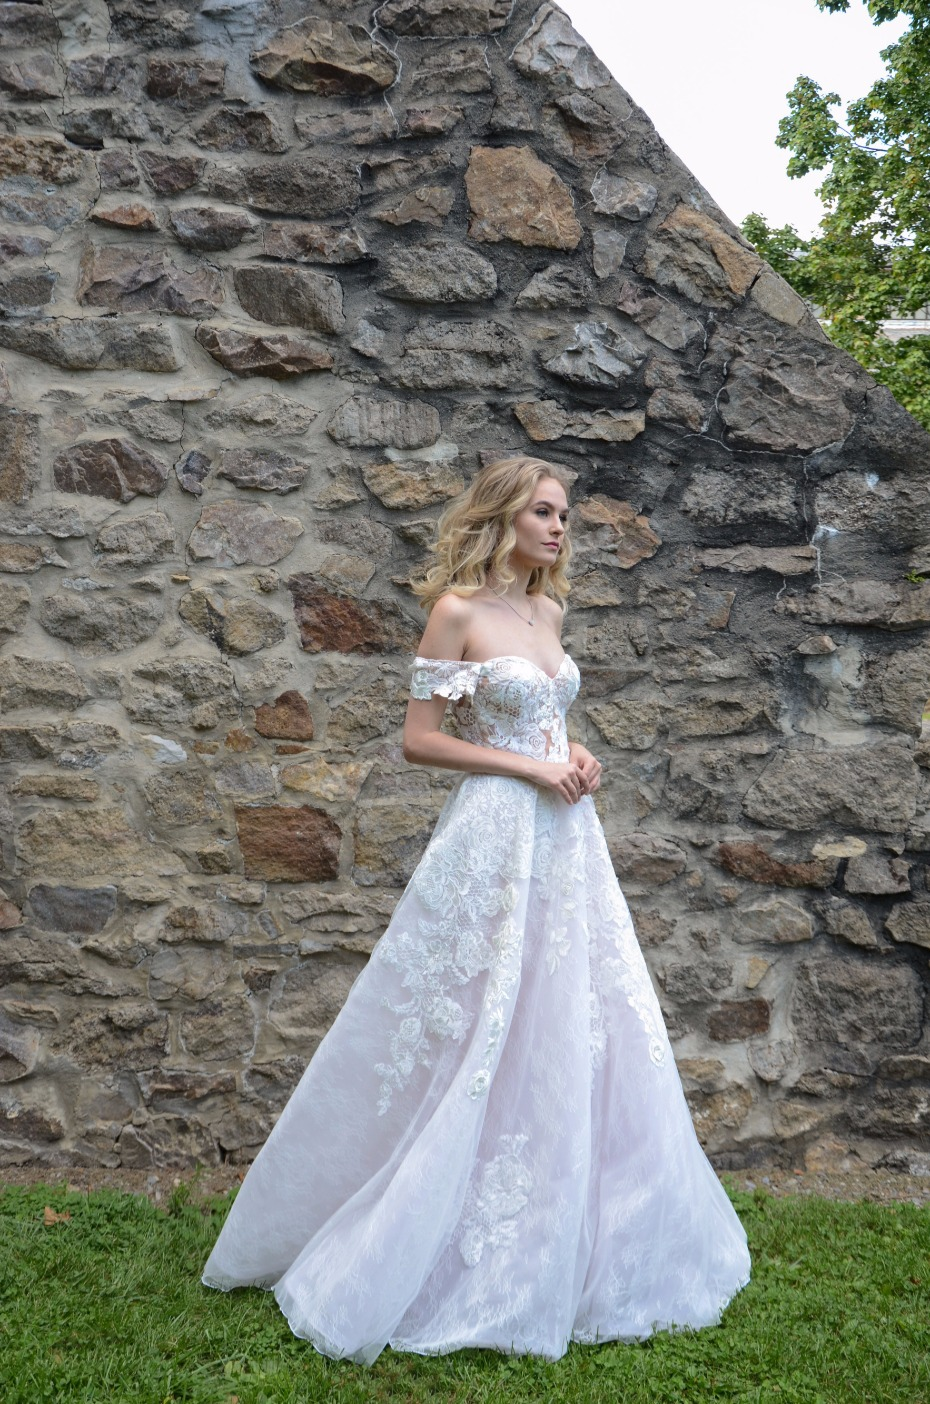 Barbara kavchok has dreamy wedding dresses for all shapes and sizes ombrellifo Gallery